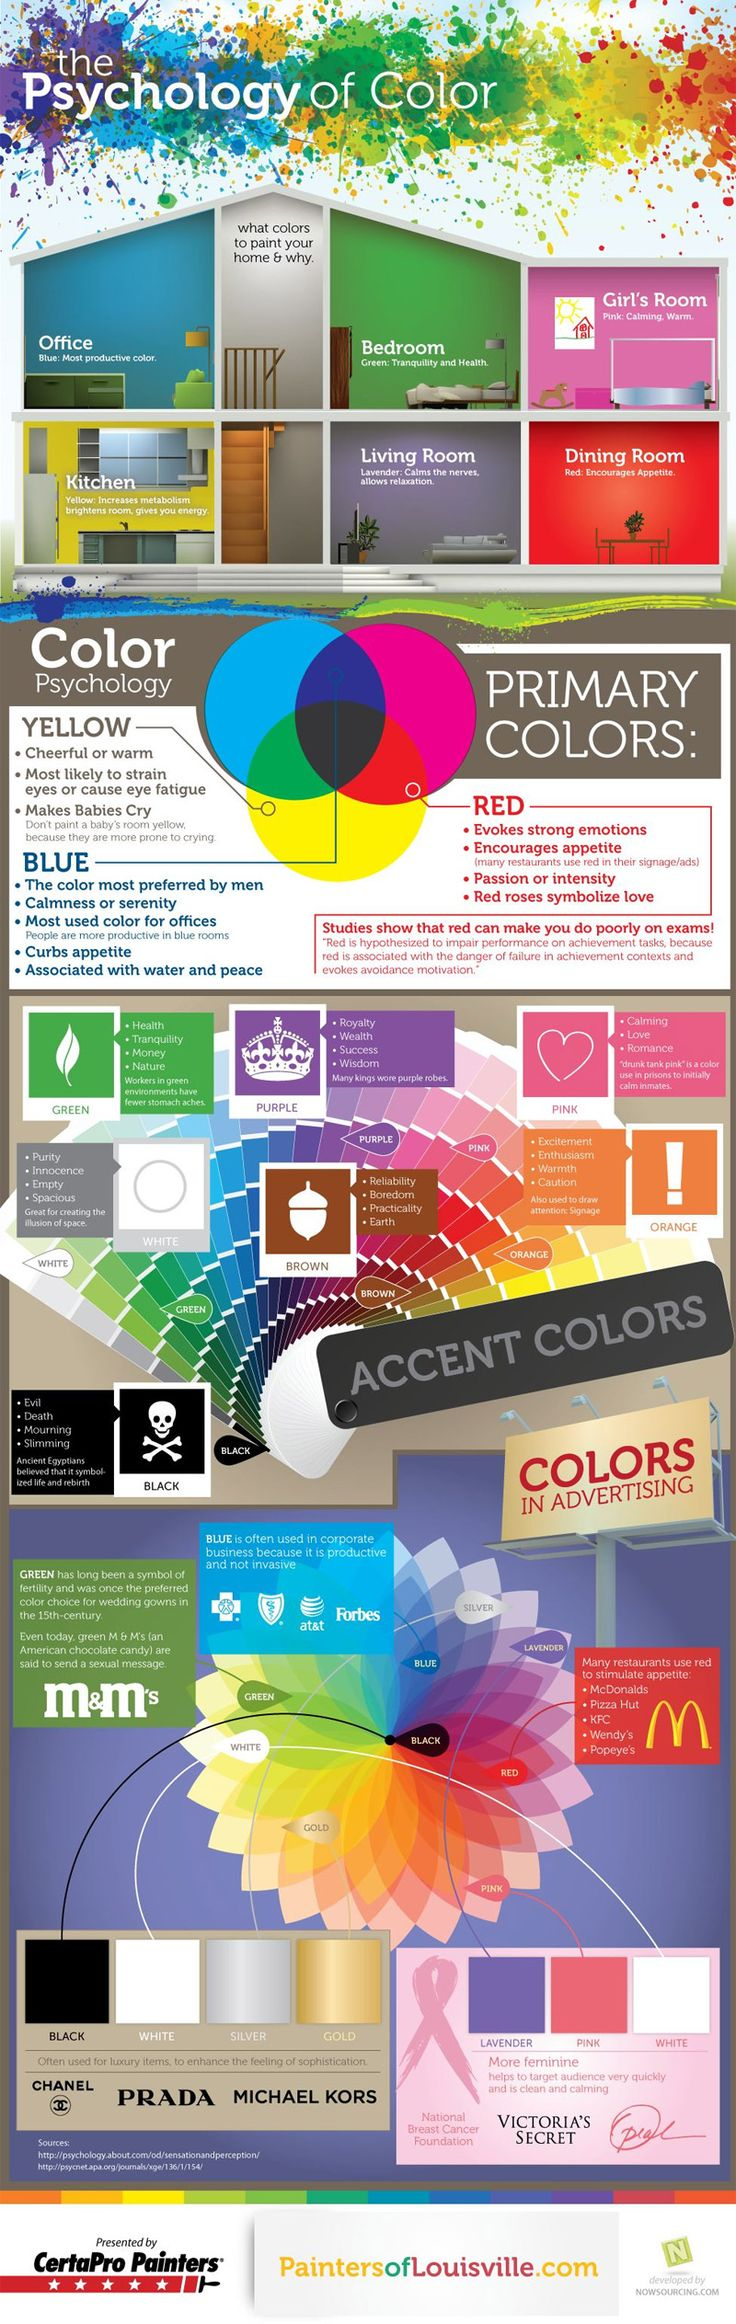 Interior Design Color Chart Cheat Sheet Catchy Interior Design Slogans and Advertising TANGELINE***